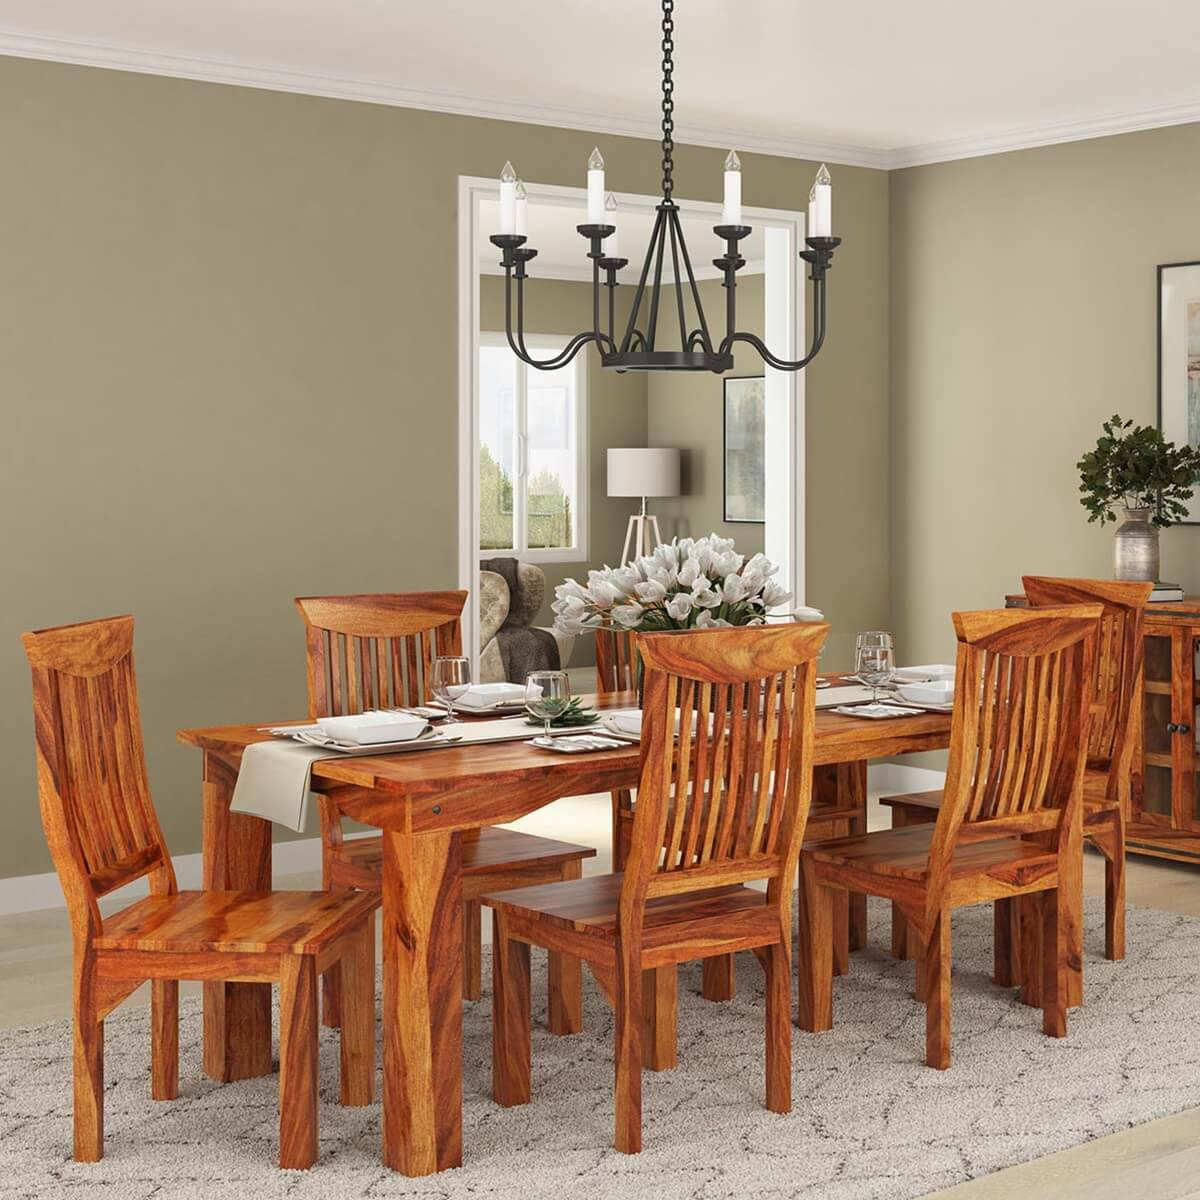 Rustic Wooden Dining Tables ~ Idaho modern rustic solid wood dining table chair set